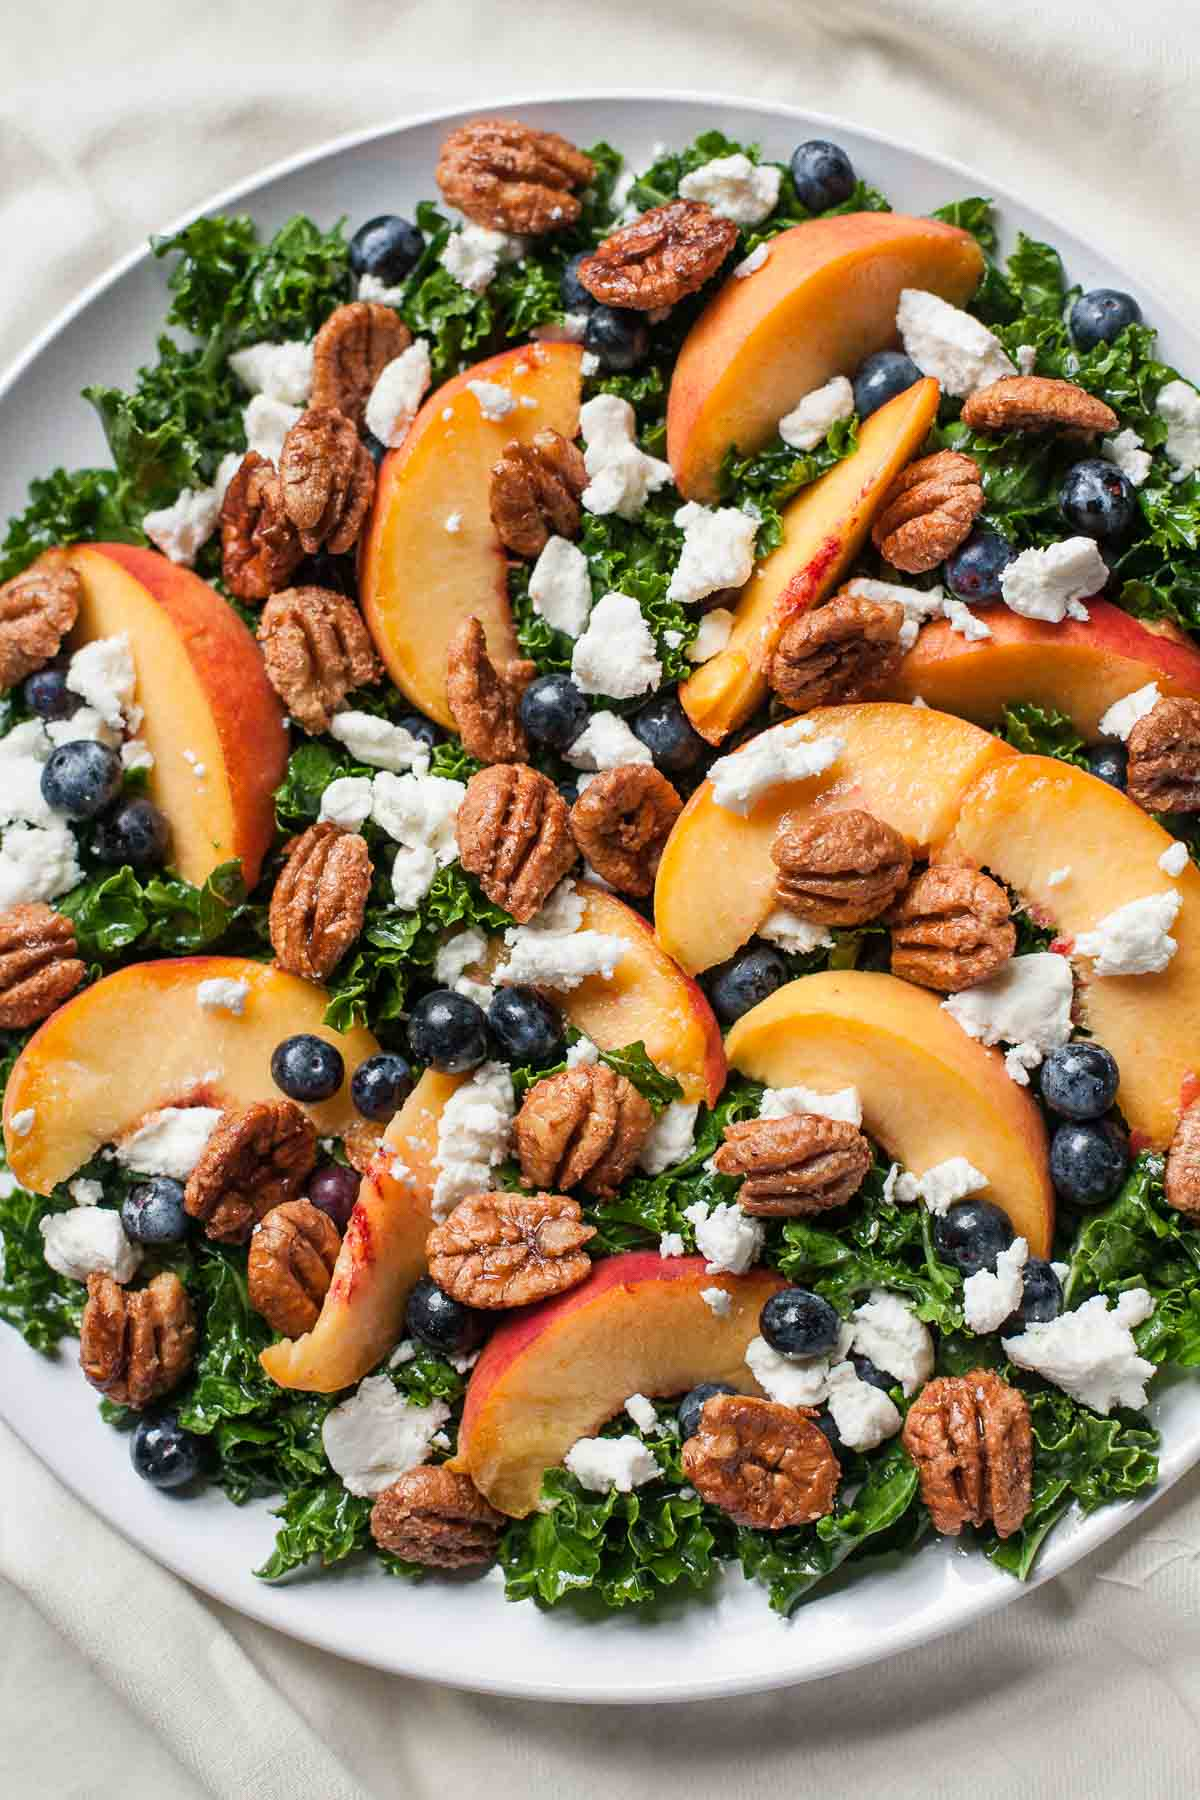 Summer Kale Salad with Peaches and Candied Pecans